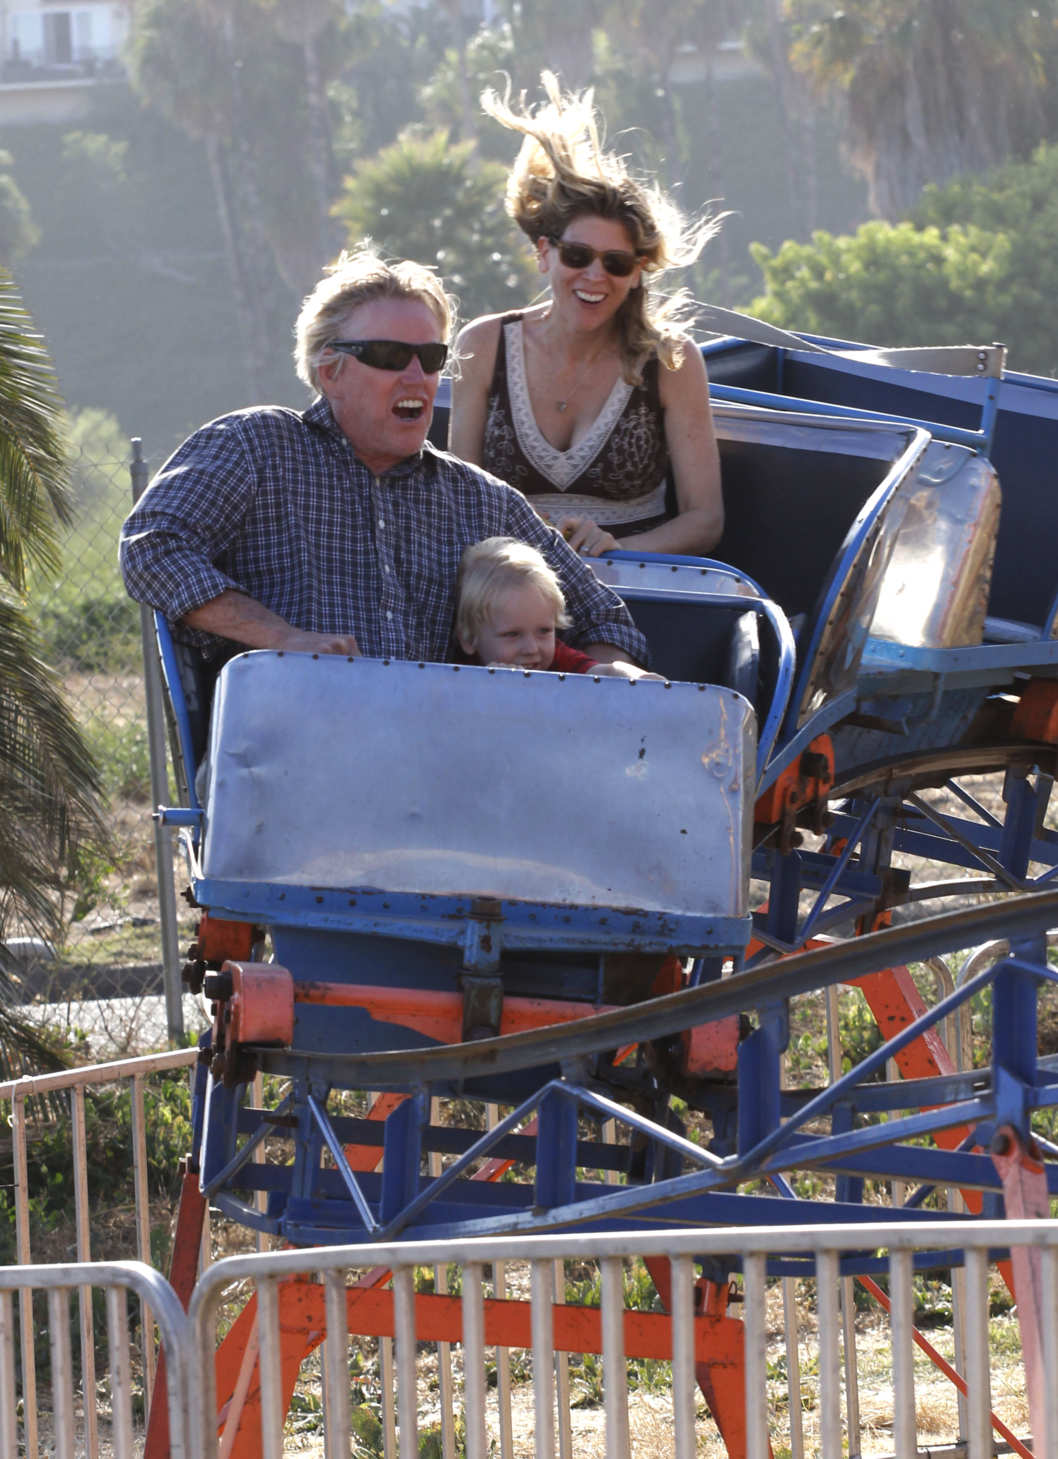 Actor Gary Busey, his girlfriend Steffanie Sampson and their son Luke Busey enjoying the day at the 31st Annual Malibu Kiwanis Chili Cook Off, Carnival and Fair in Malibu, California on September 3, 2012 Actor Gary Busey, his girlfriend Steffanie Sampson and their son Luke Busey enjoying the day at the 31st Annual Malibu Kiwanis Chili Cook Off, Carnival and Fair in Malibu, California on September 3, 2012